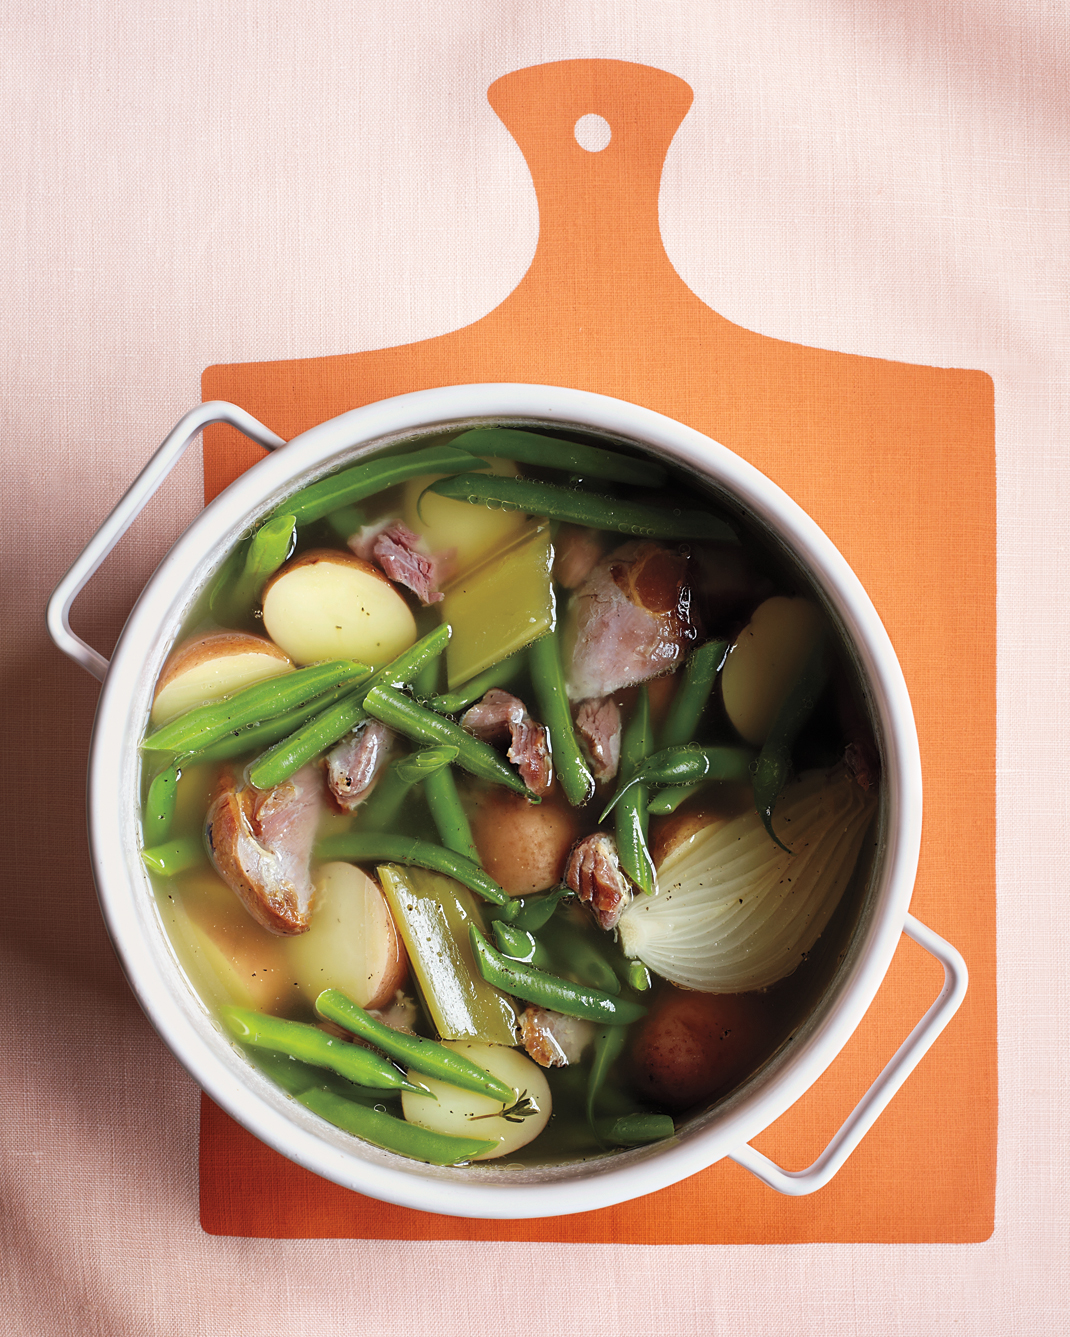 green-beans-with-potatoes-and-ham-m109160.jpg